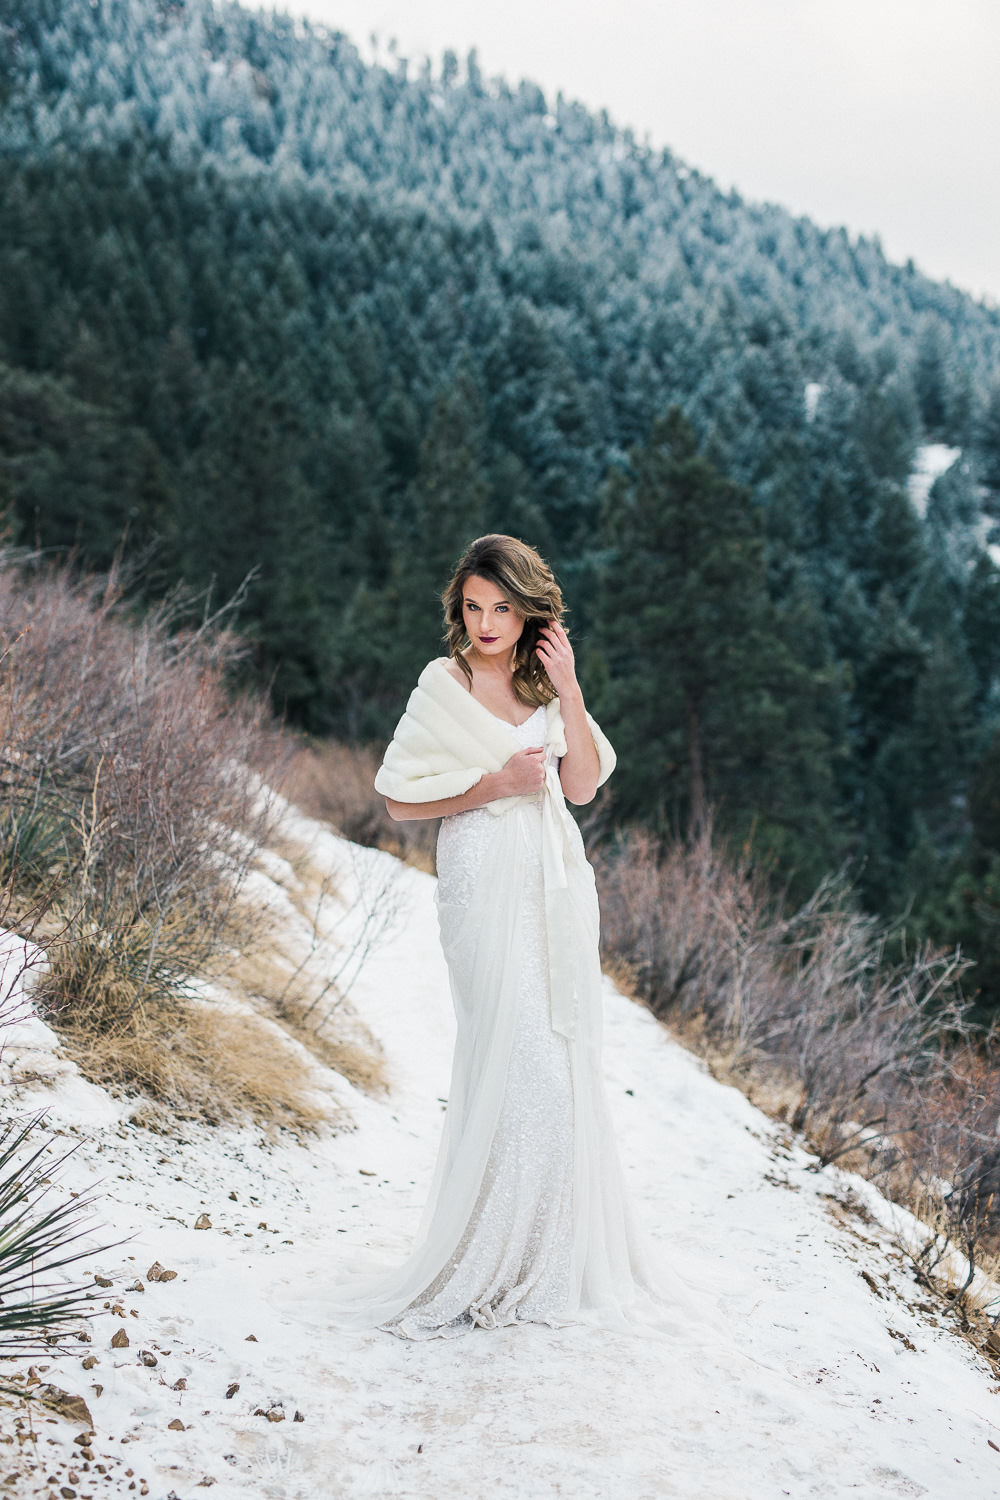 Emma and Grace Bridal wedding dress Colorado Elopement